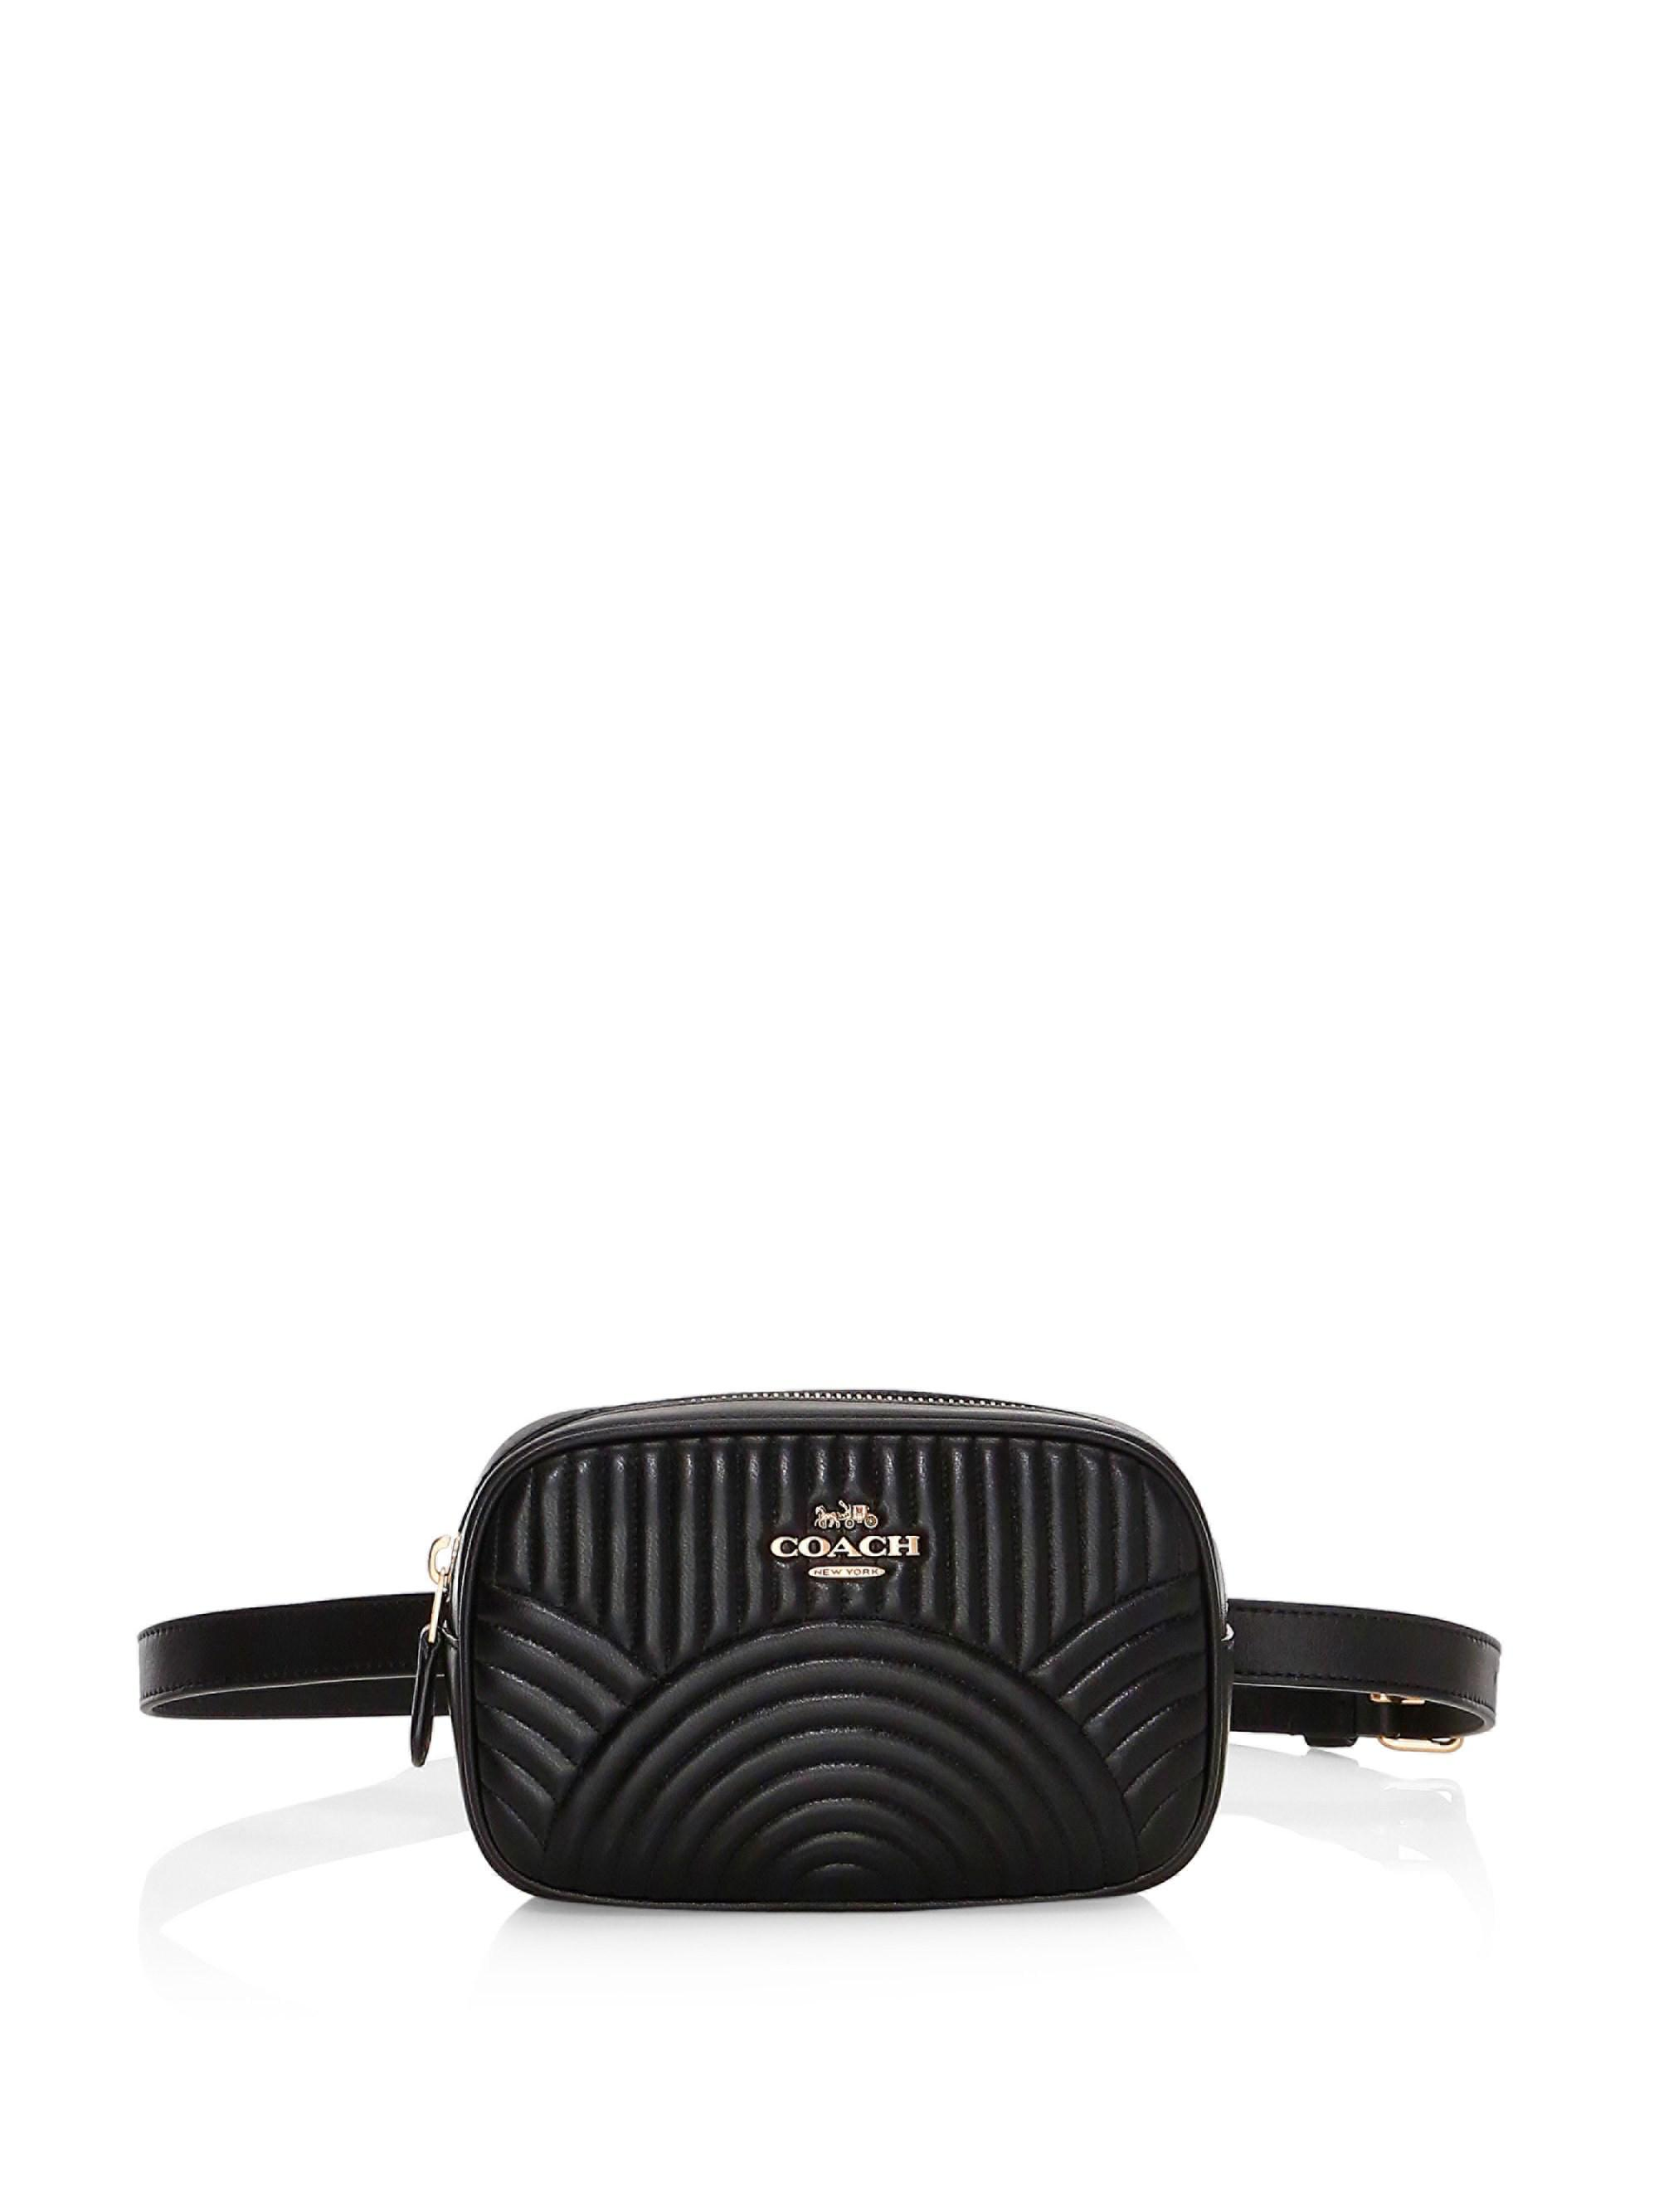 740e25821b91 COACH - Black Deco Quilted Dorsay Leather Belt Bag - Lyst. View fullscreen